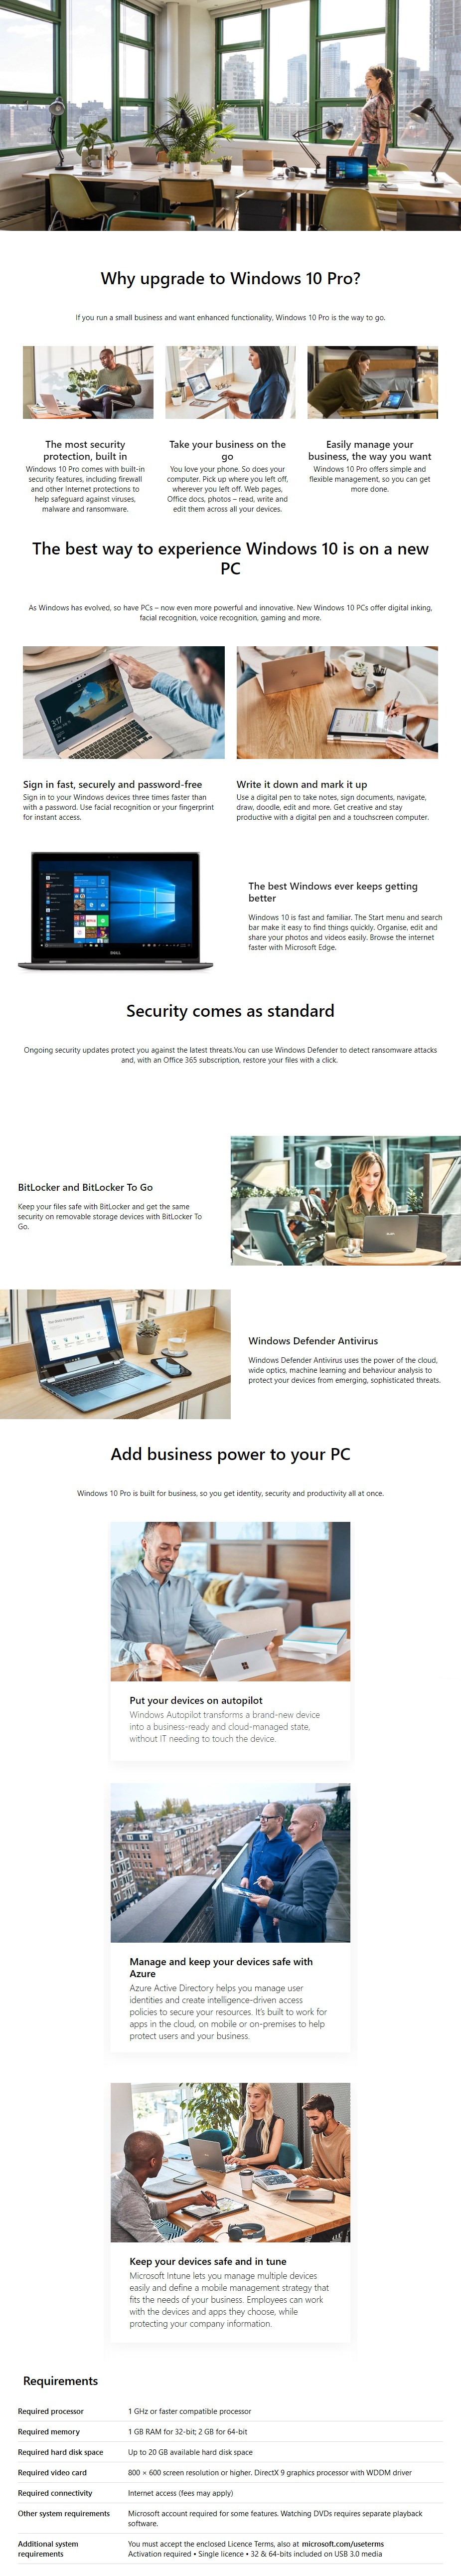 A large marketing image providing additional information about the product Microsoft Windows 10 Professional Retail 32/64-Bit Flash Drive - Additional alt info not provided